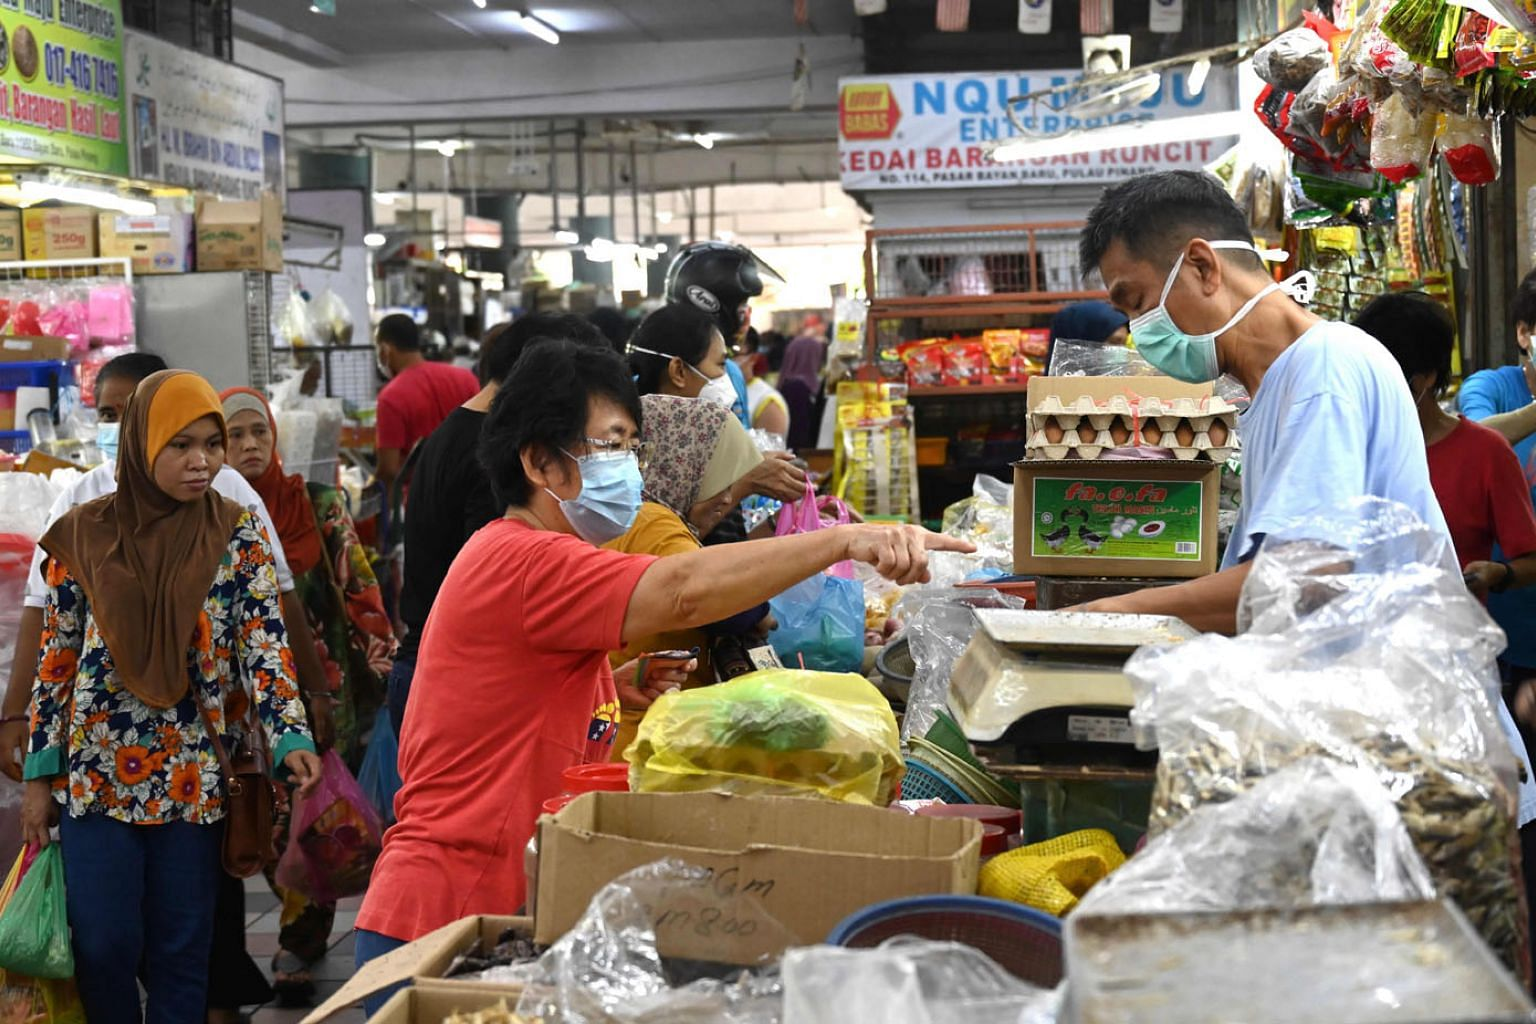 Shoppers buying fresh produce at a market in Penang on the third day of a partial lockdown in Malaysia yesterday. Except for essential services such as supermarkets, banks, petrol stations and pharmacies which will remain open, schools, offices, park